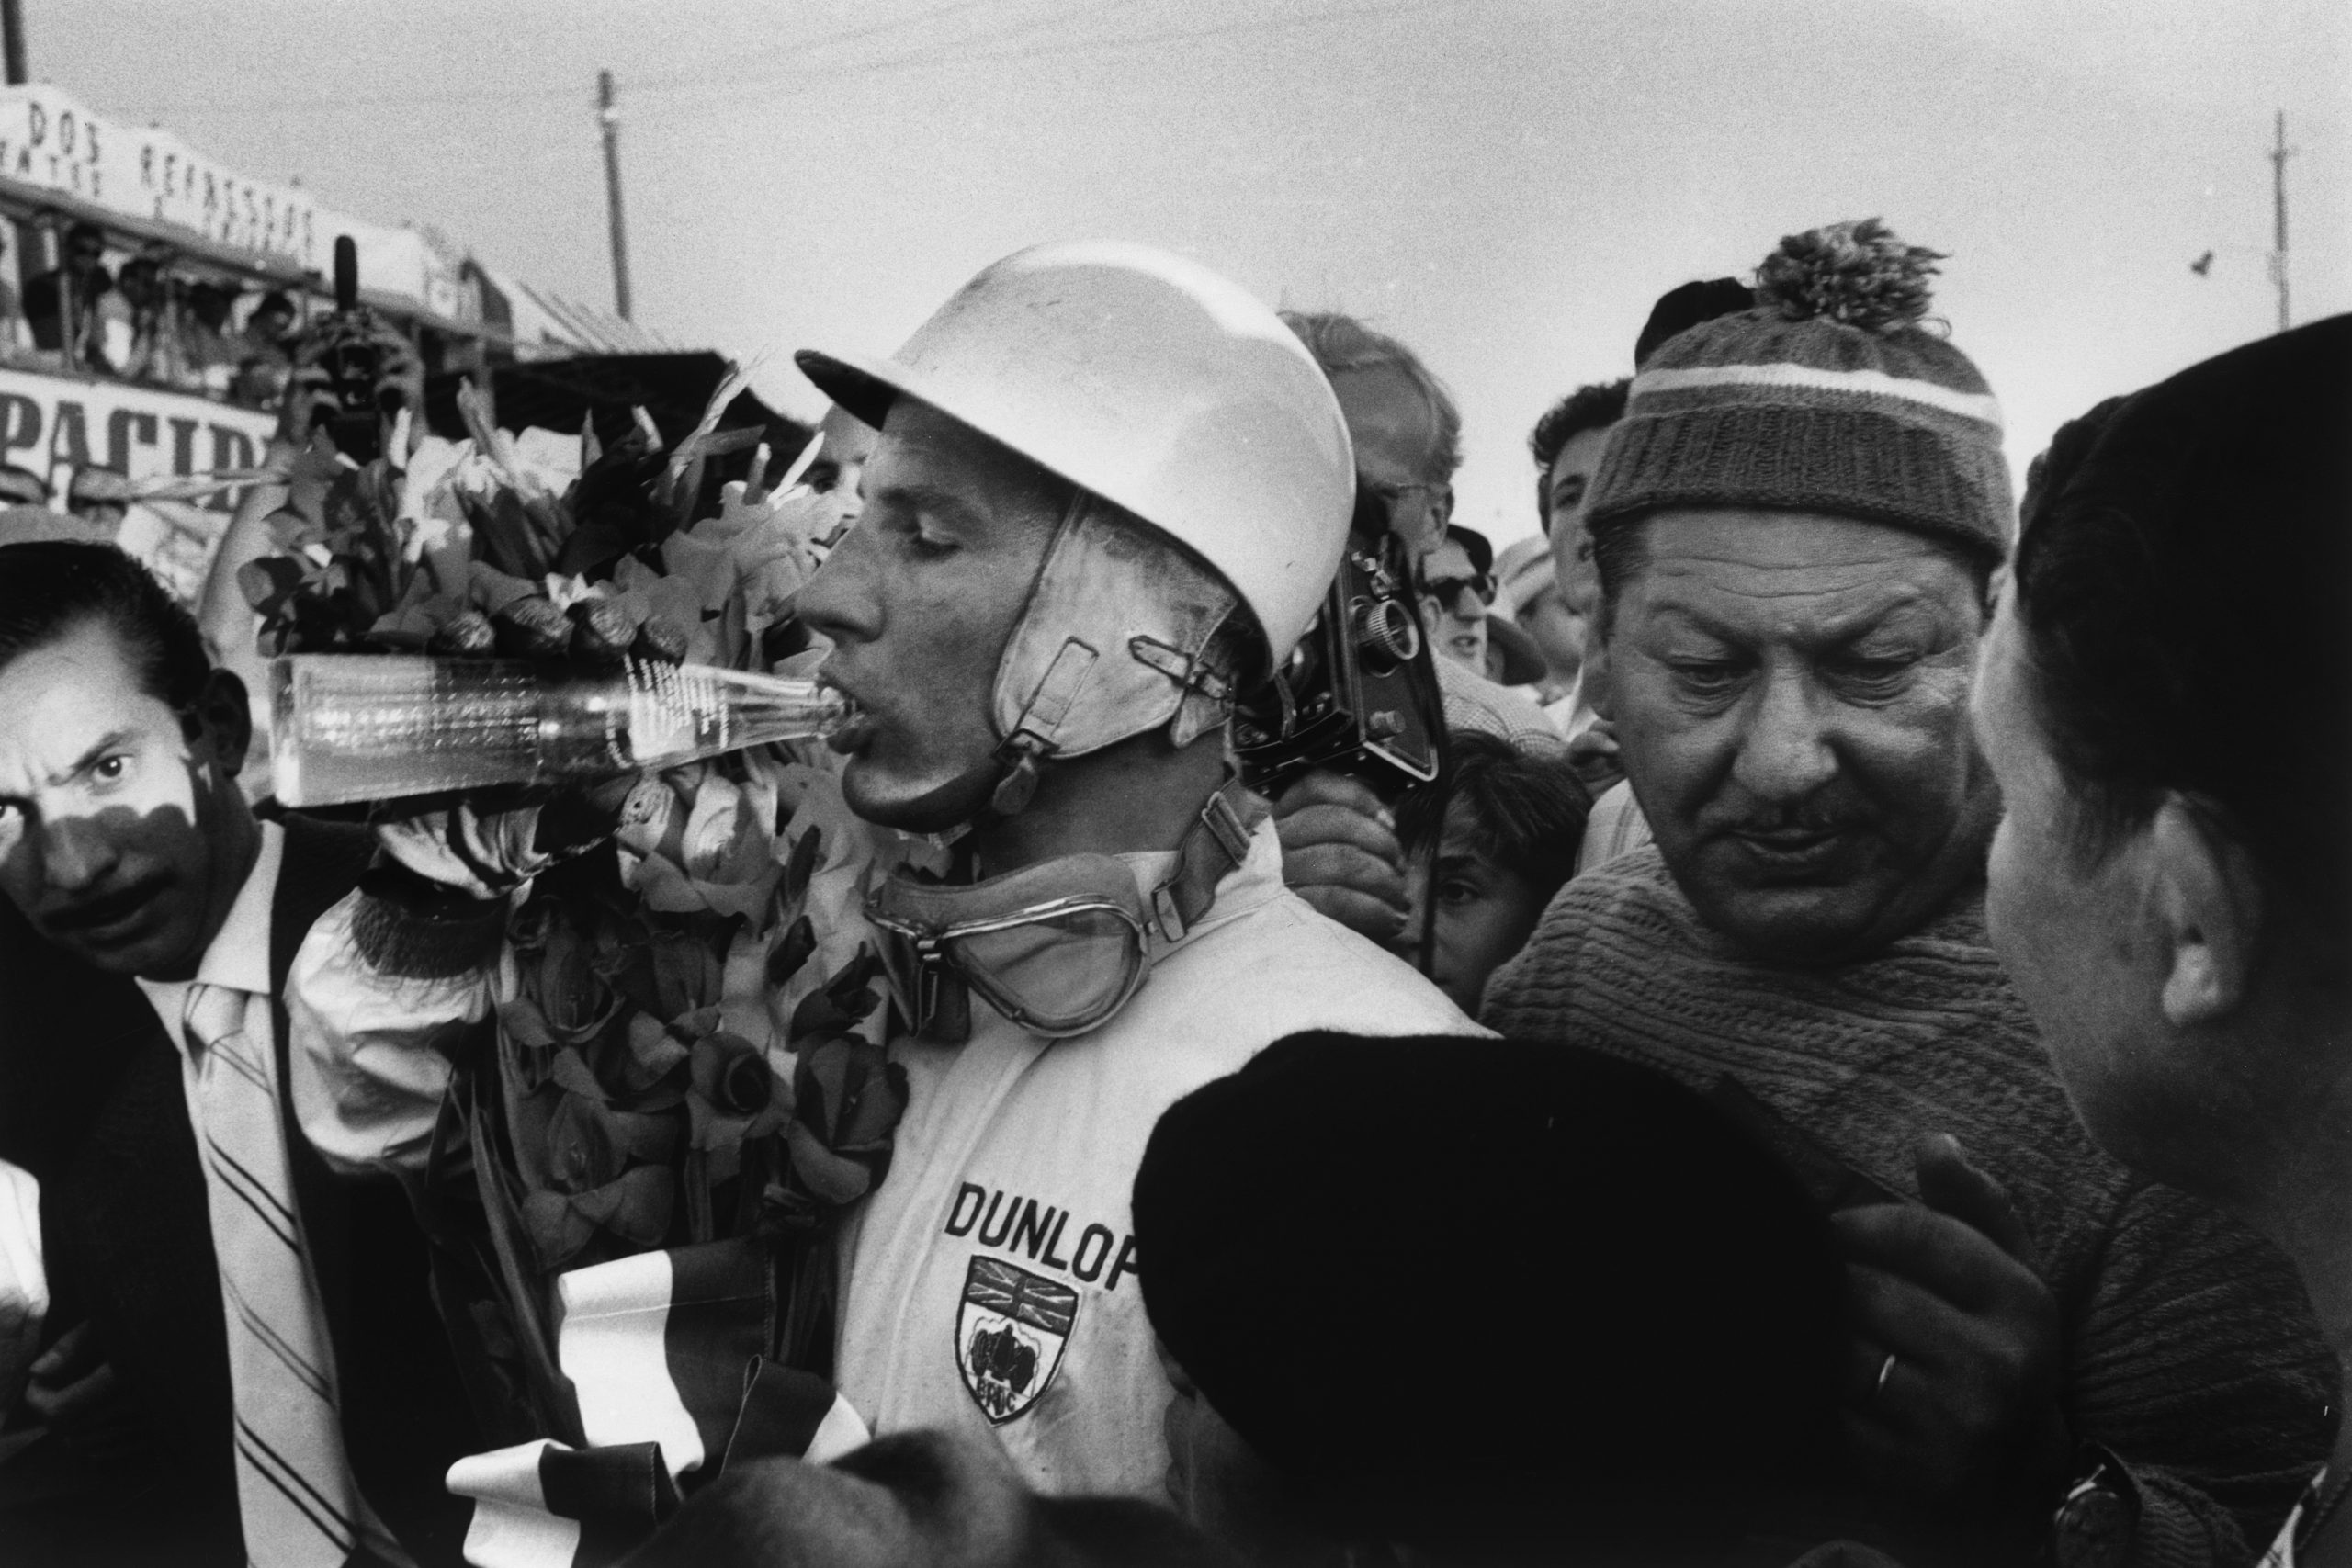 Stirling Moss celebrates with after winning.